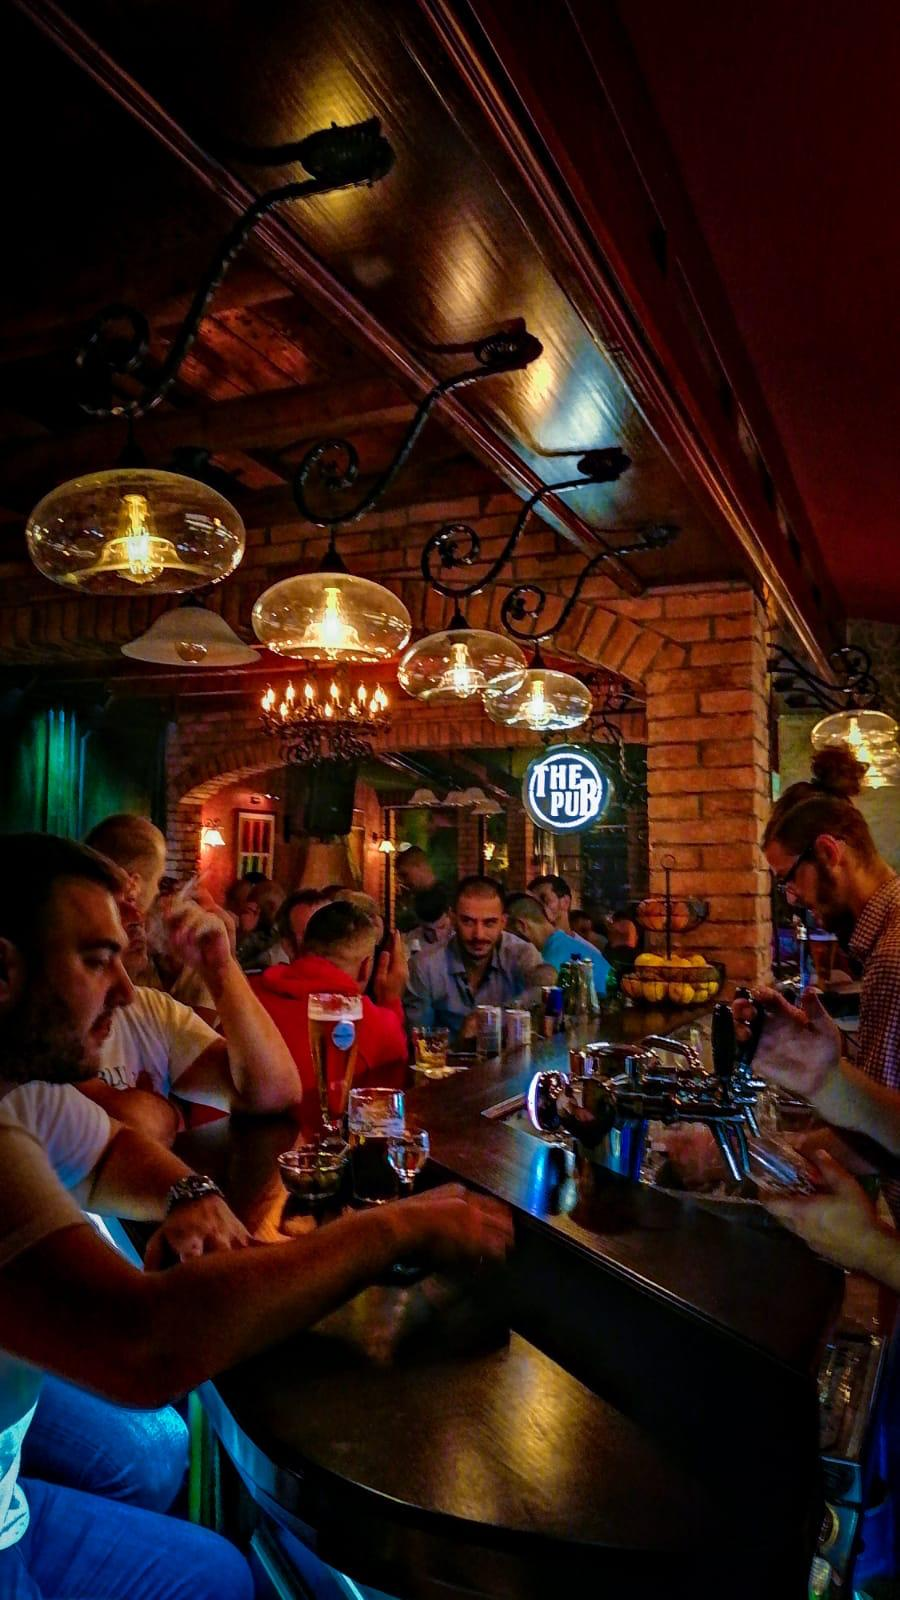 The Pub Novi Pazar